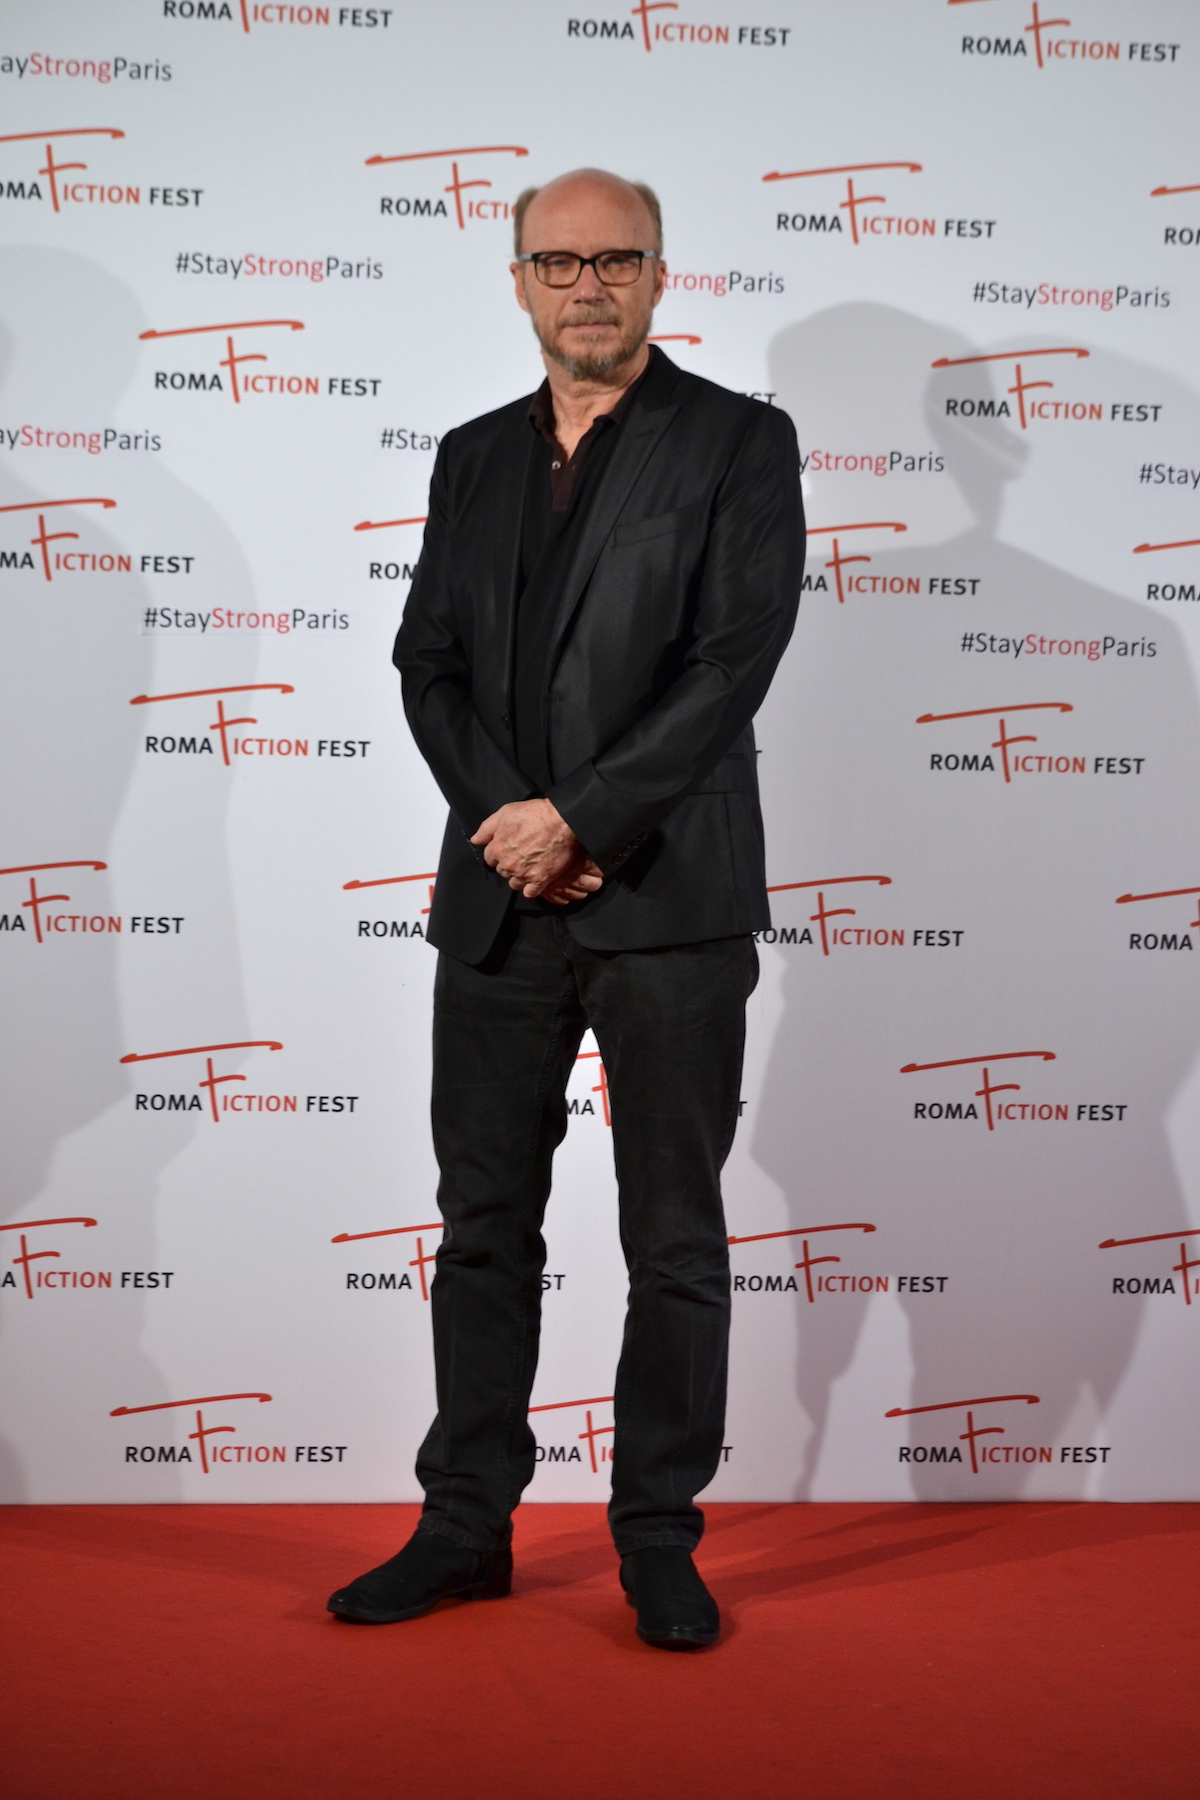 Roma Fiction Fest 2015: Paul Haggis in uno scatto al photocall prima della masterclass